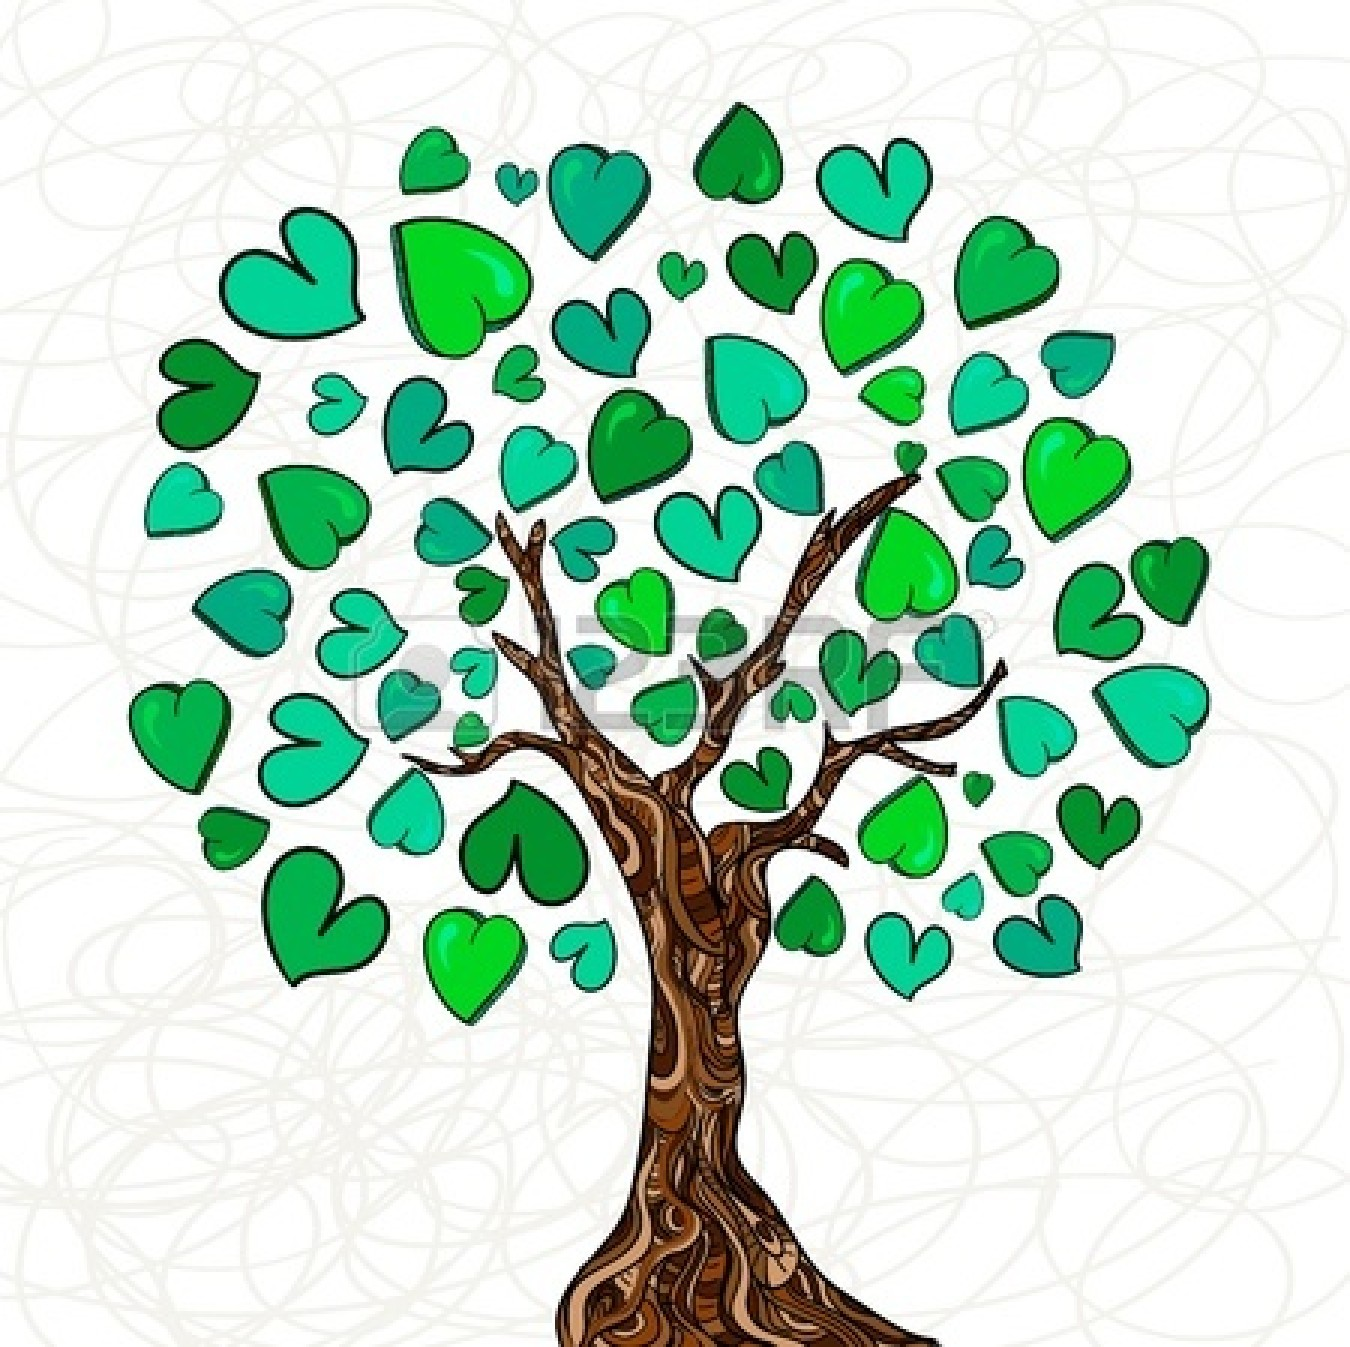 hight resolution of 1350x1347 love clipart family tree